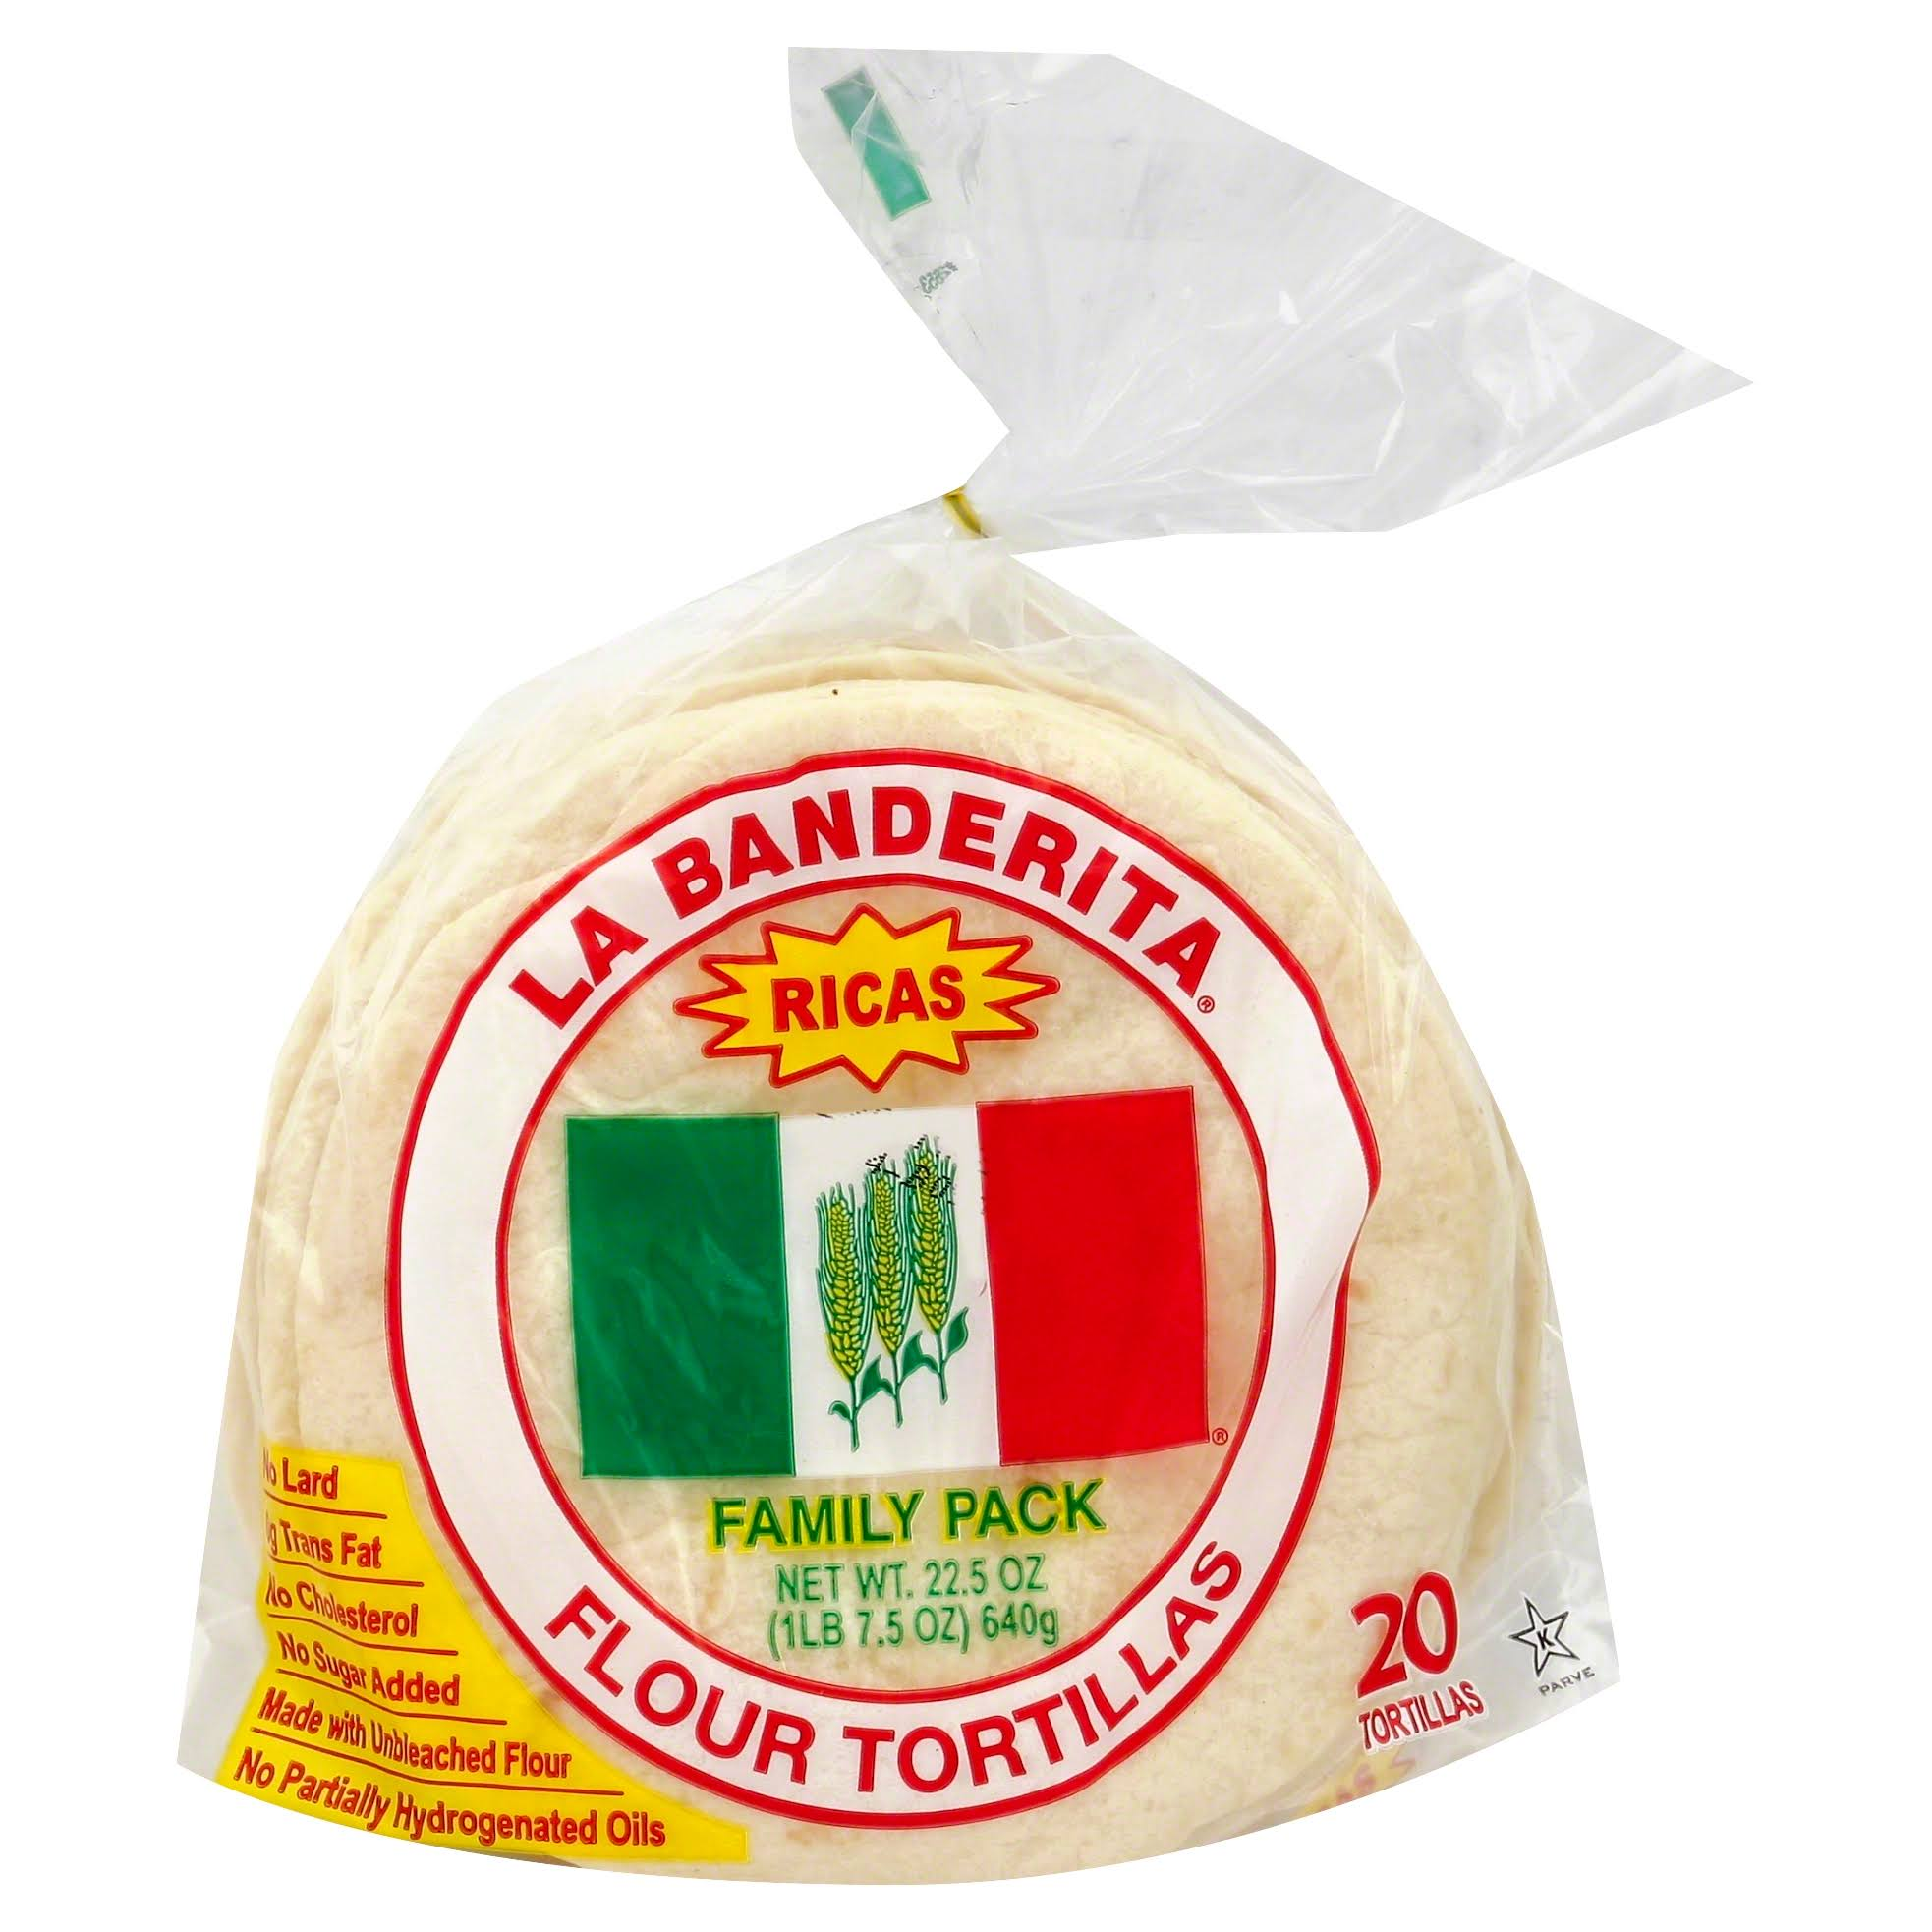 La Banderita Flour Tortillas Family Pack - 22.5oz, x20